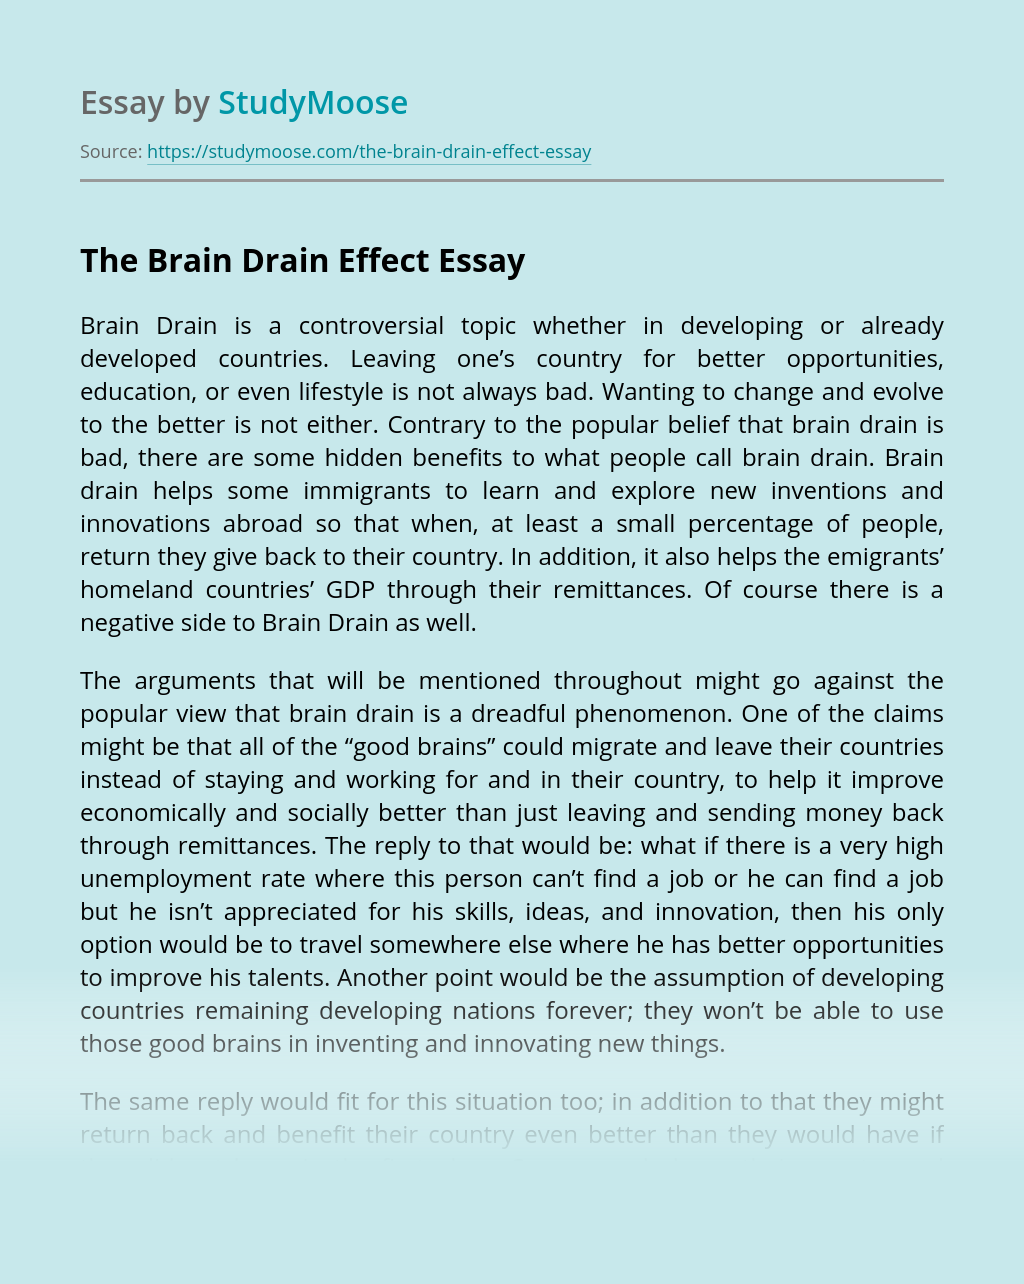 Brain drain essay example tips for writing a good application essay